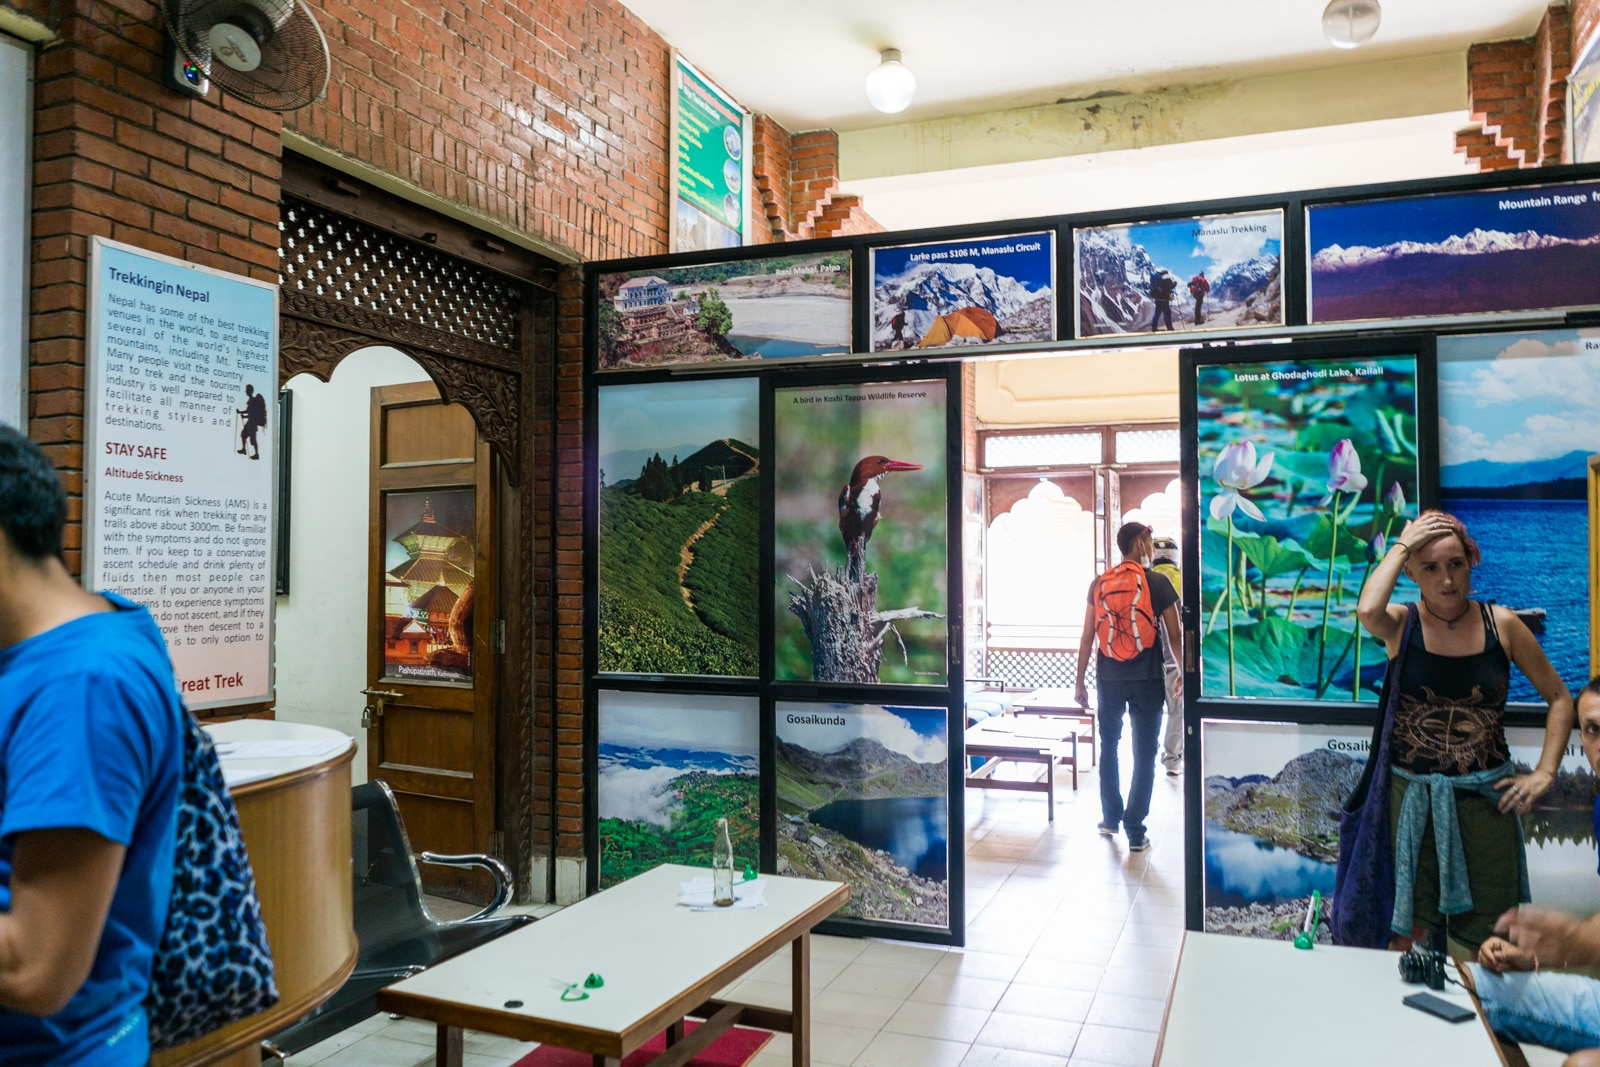 How to get a TIMS card and trekking permits in Kathmandu, Nepal - Interior of the TIMS card office - Lost With Purpose